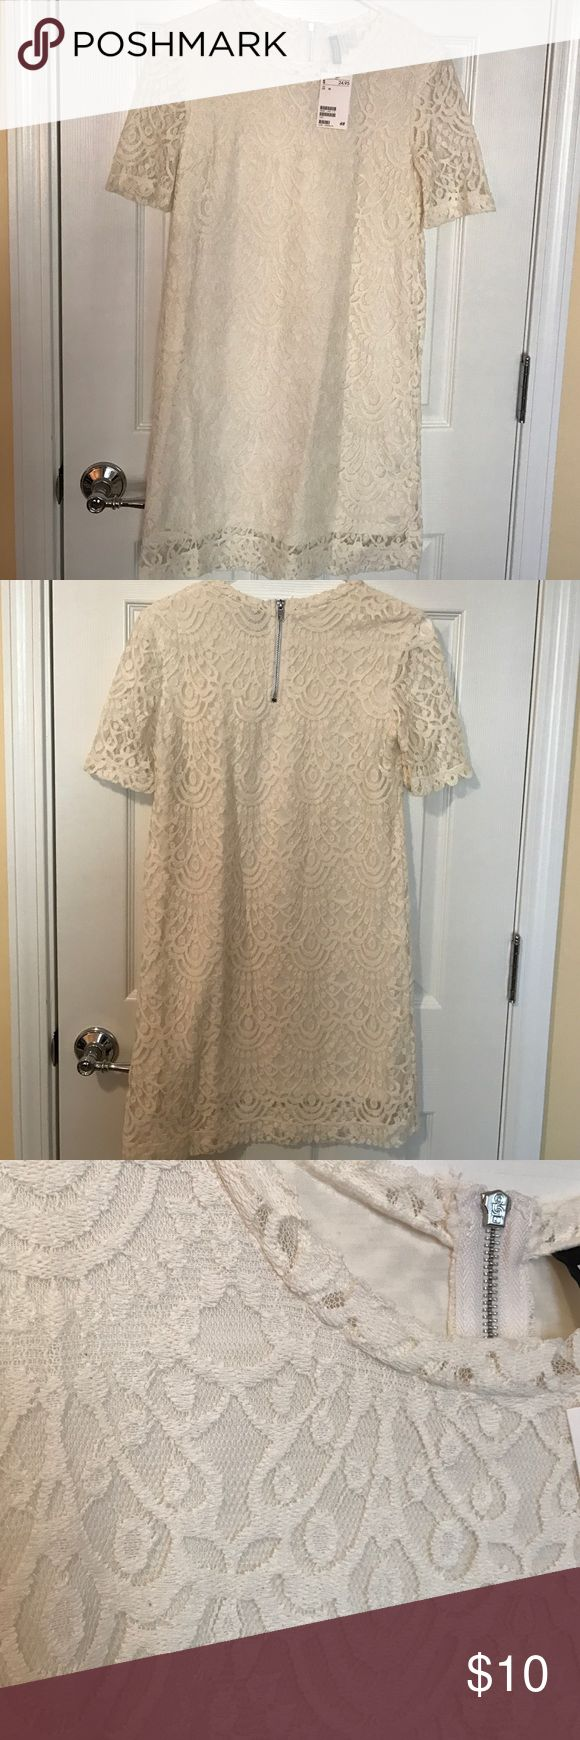 "H&M Cream Lace Shift Dress Beautiful cream lace dress with sleeves, 34"" from shoulder to bottom hem H&M Dresses"